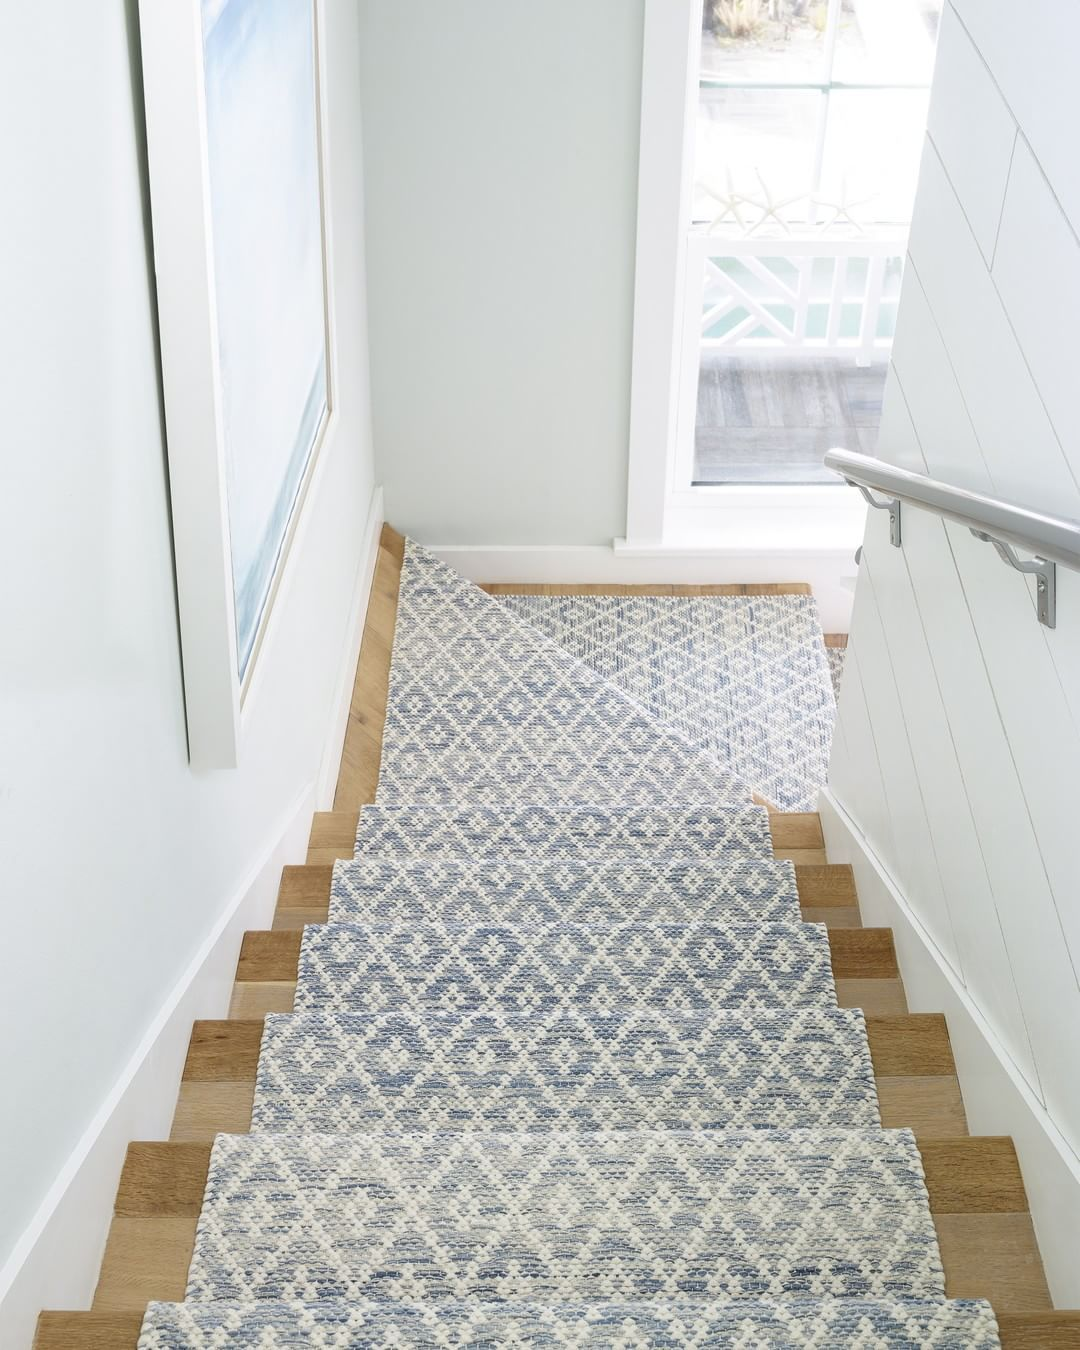 #annieselke #dashandalbert #interiordesign #homedecor #rug #stairrunner #bluerugs #stairs